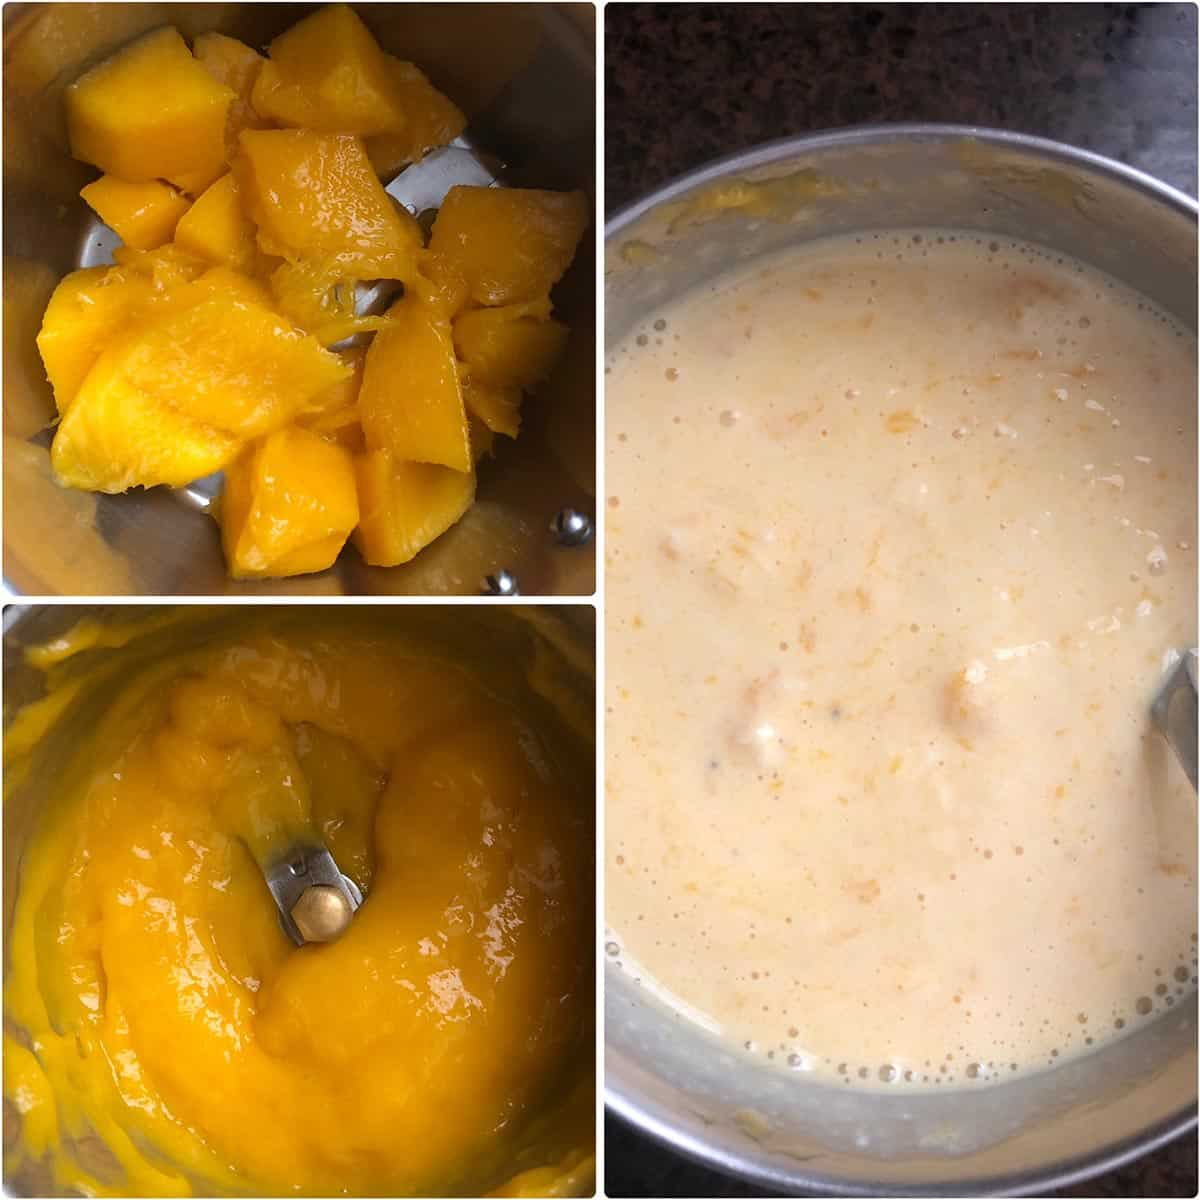 Mango cubes ground to pulp and added to milk mixture